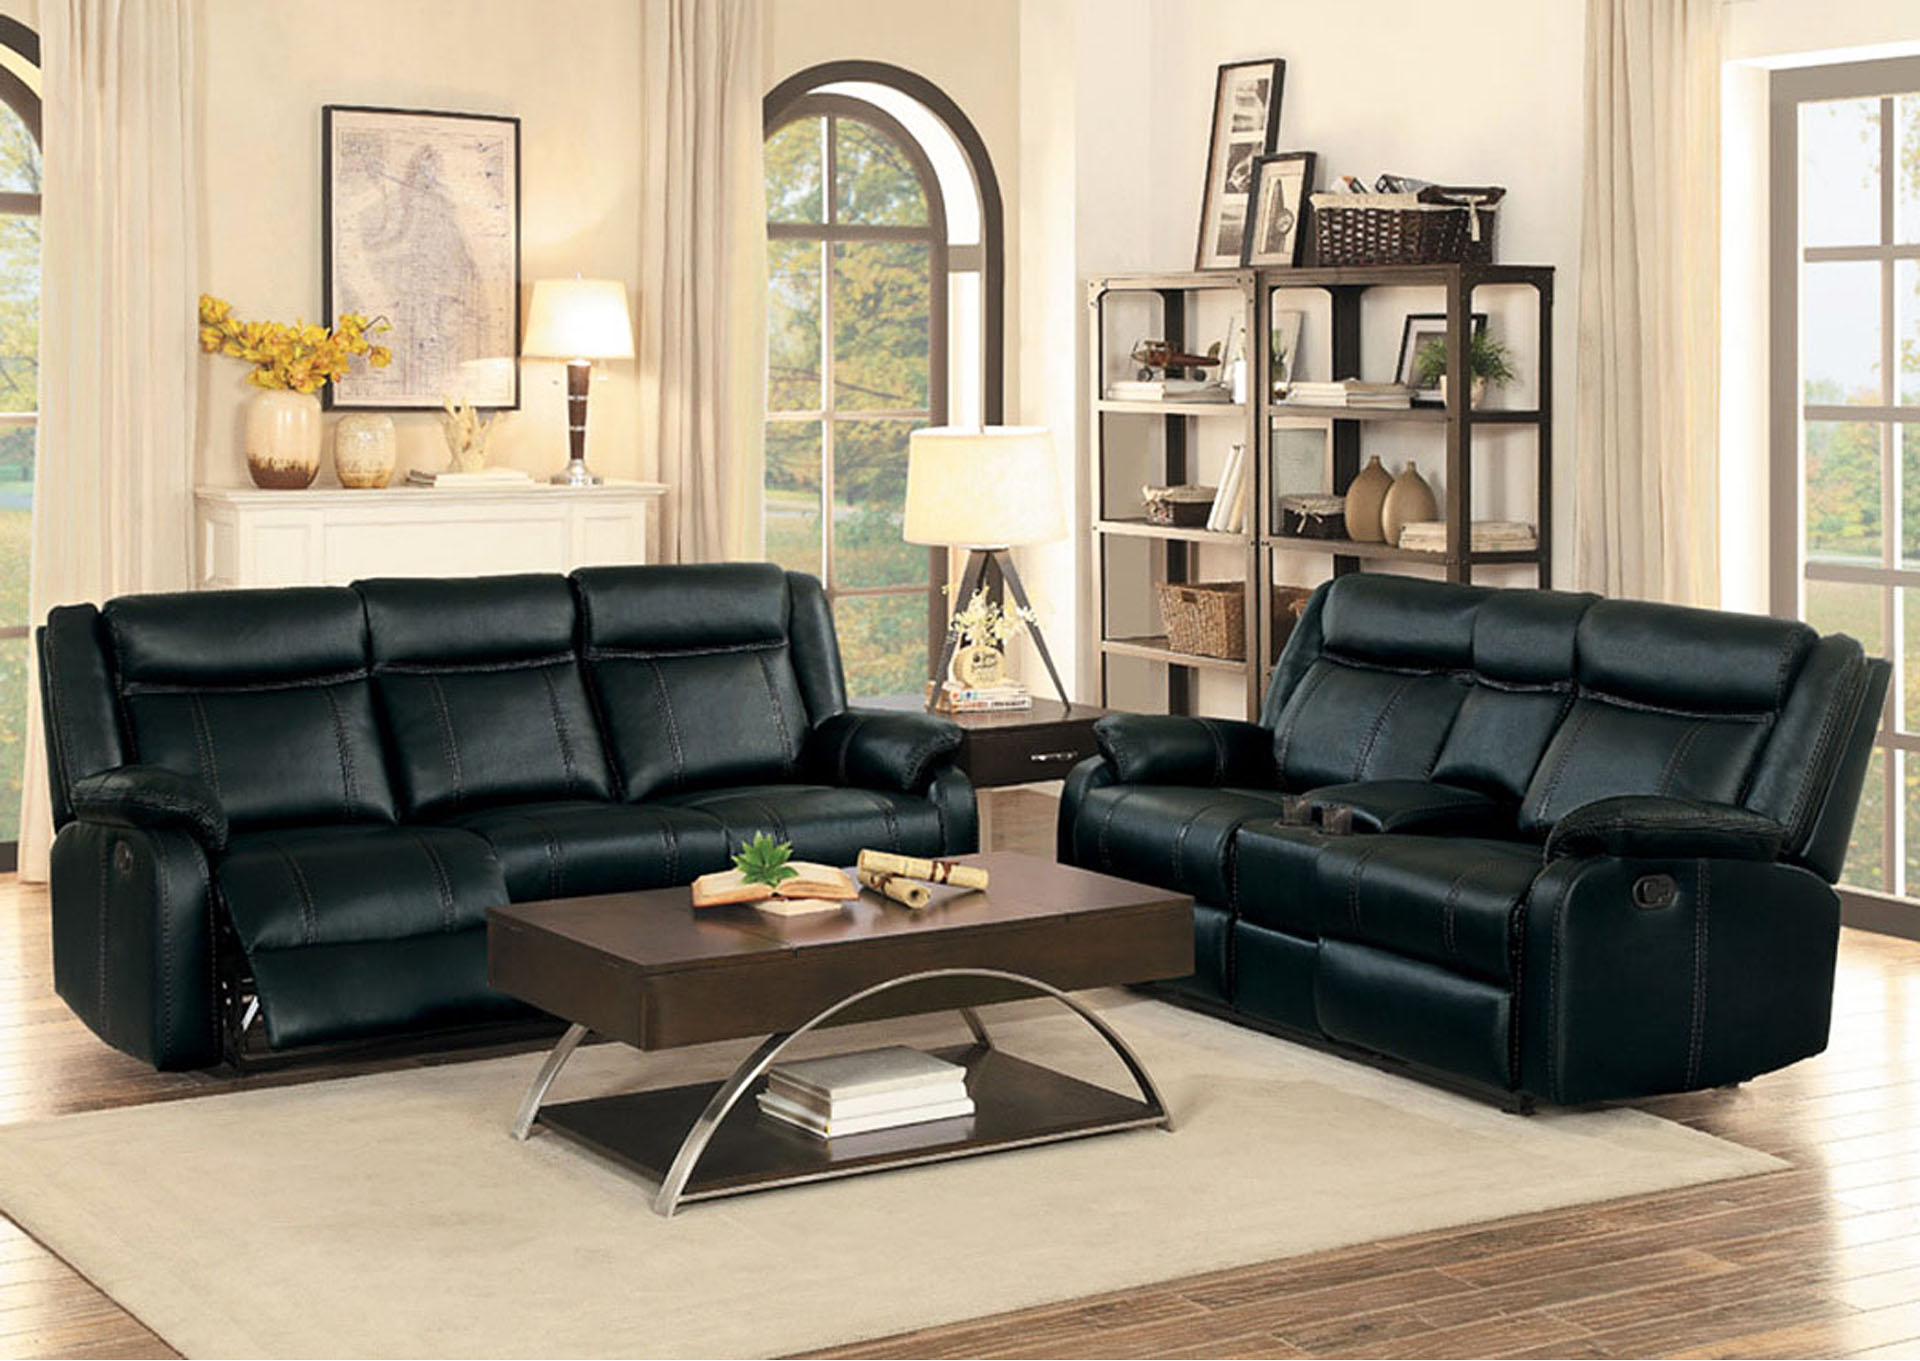 Hot Buys Furniture Snellville Ga Double Reclining Sofa W Center